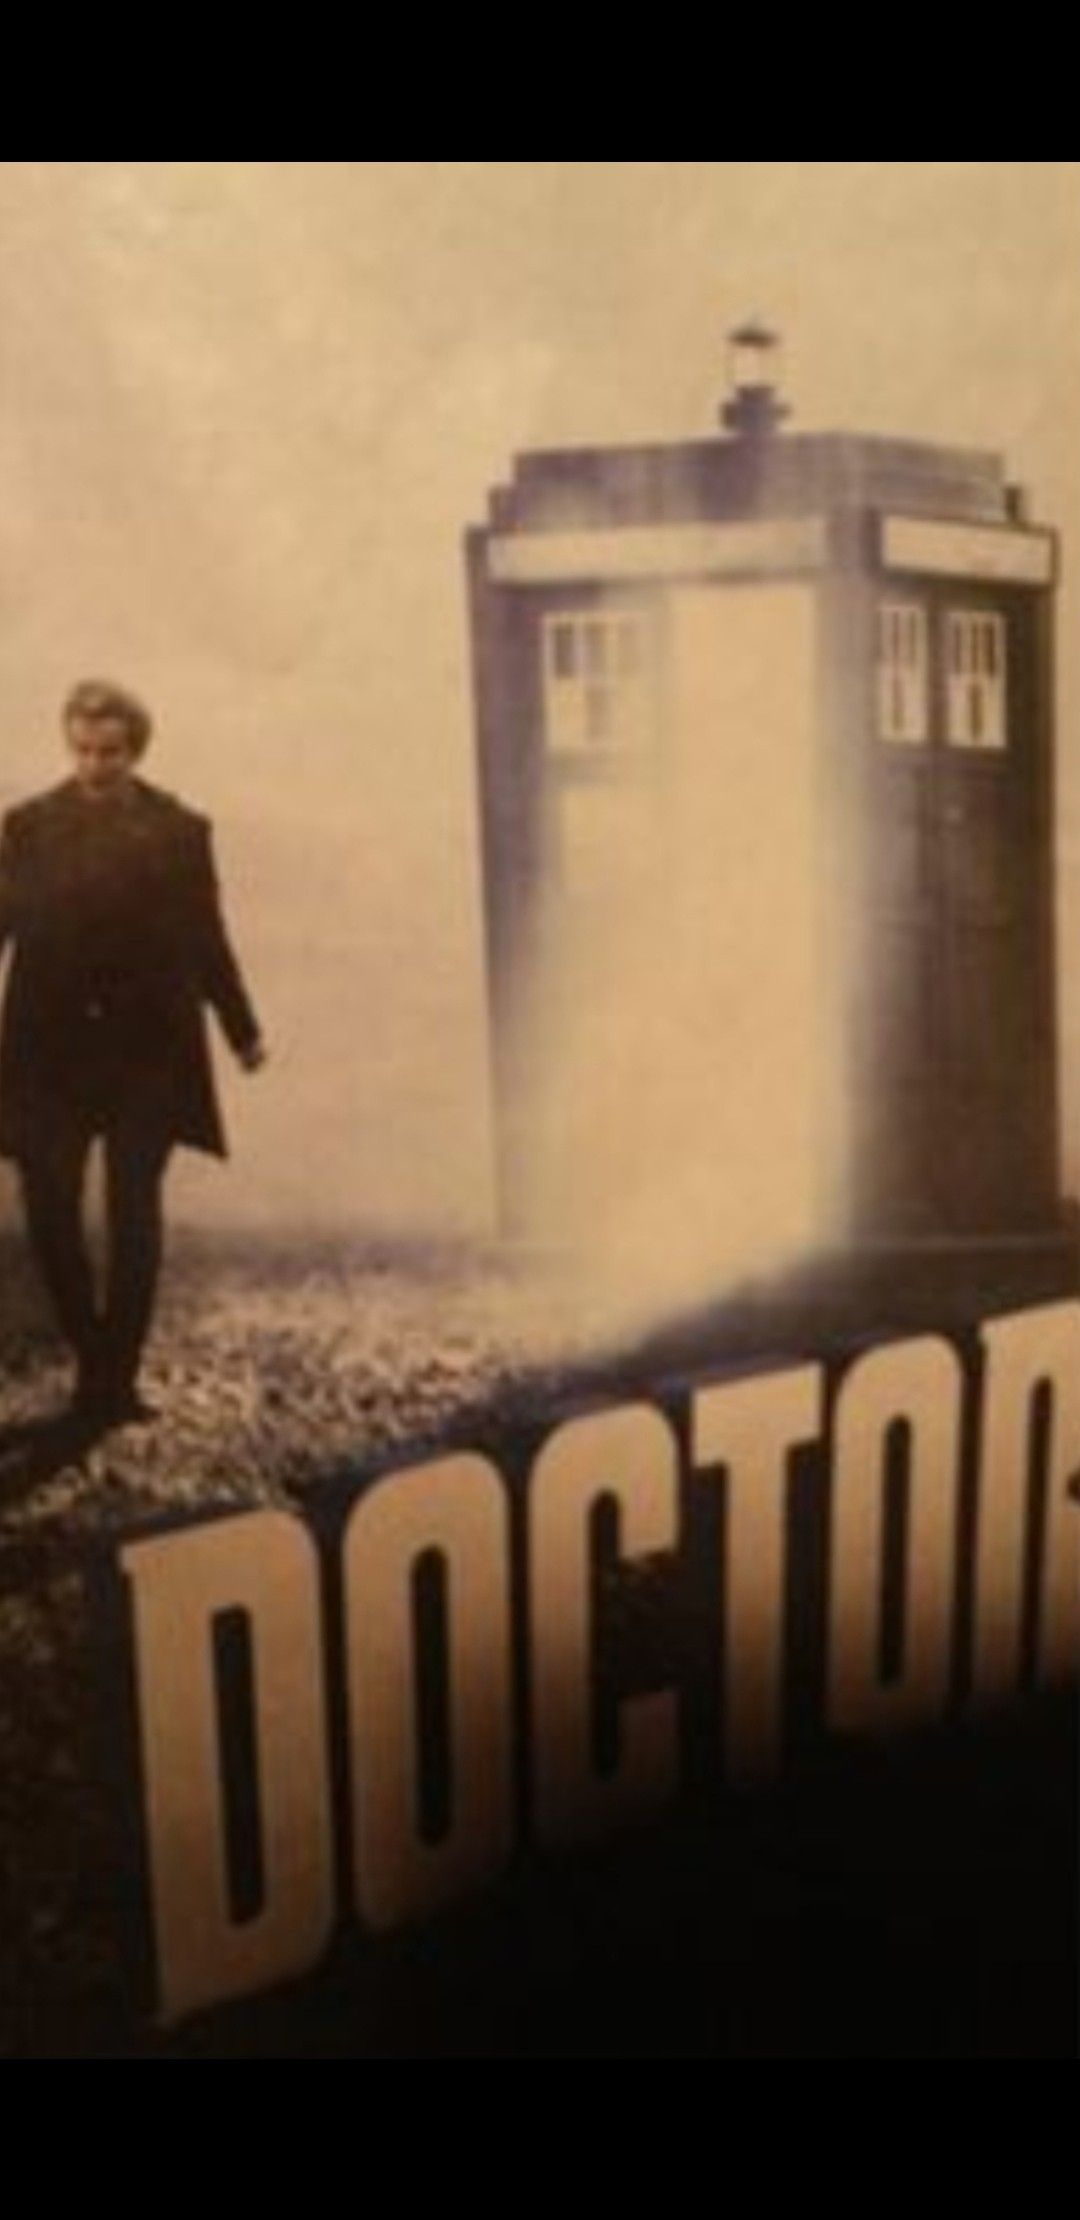 Pin by Andrew The Whovian. on The TARDIS. Tardis, Poster